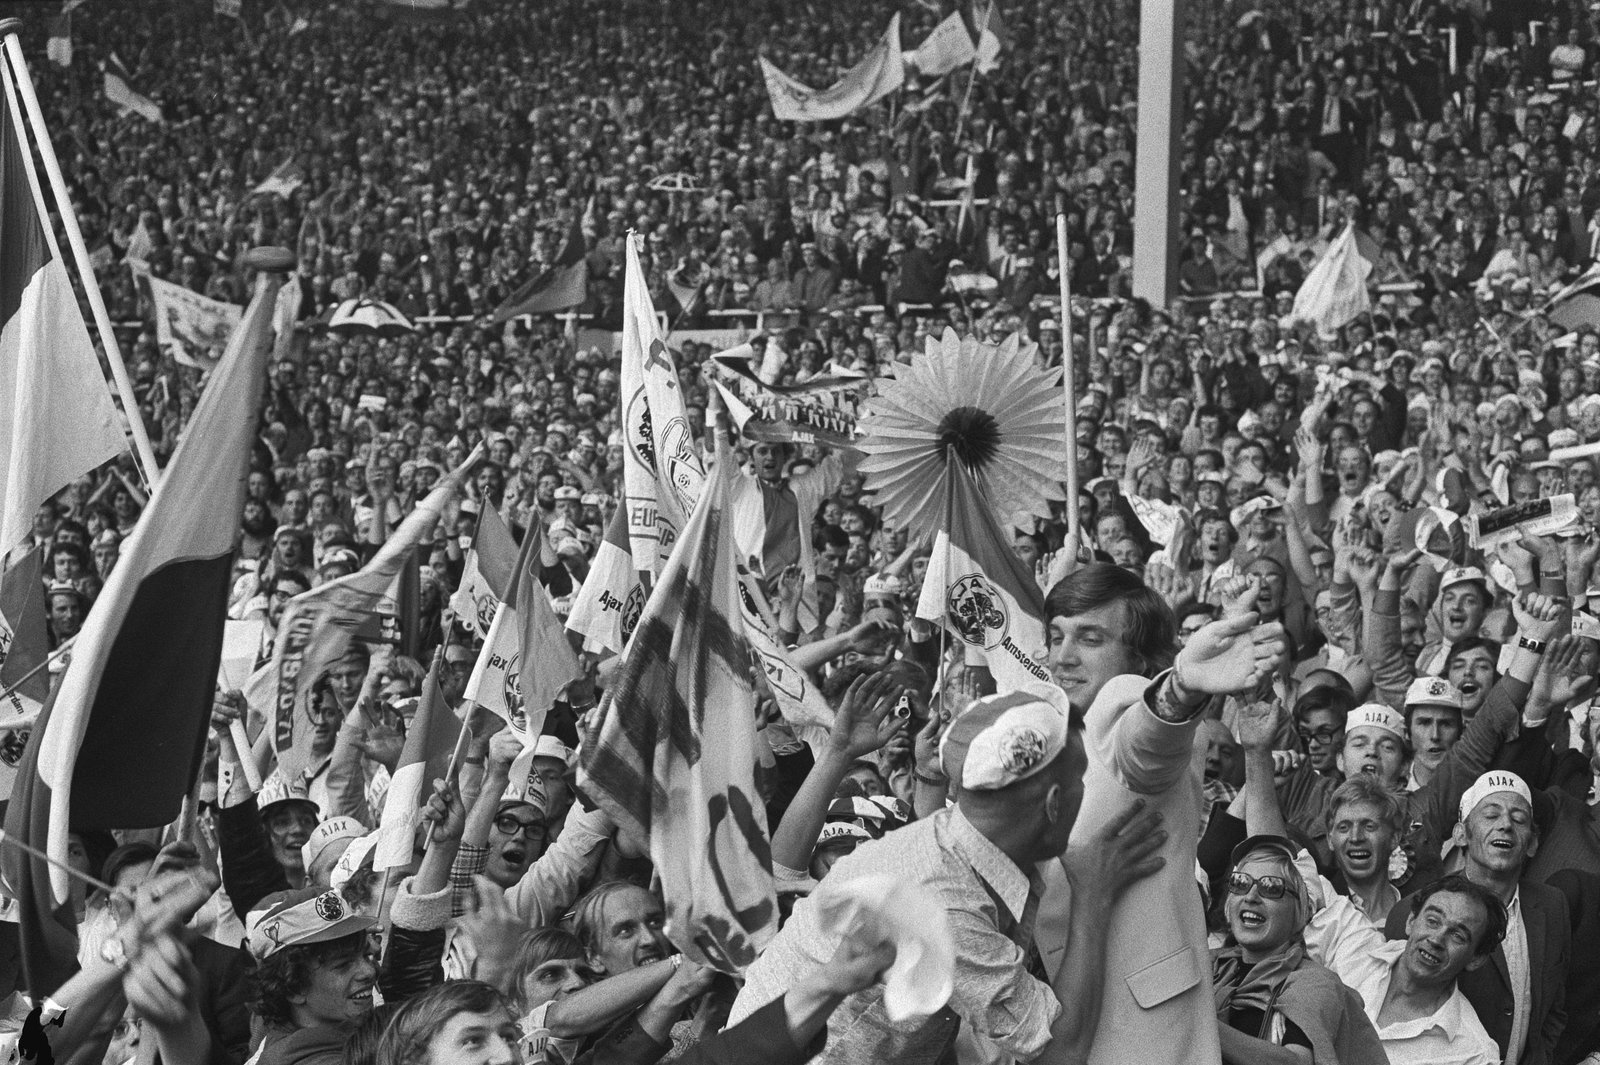 Ajax supporters cheering Ruud Krol (in bright suit), 1971, Bert Verhoeff / Anefo , Nationaal Archief 1971, In Copyright